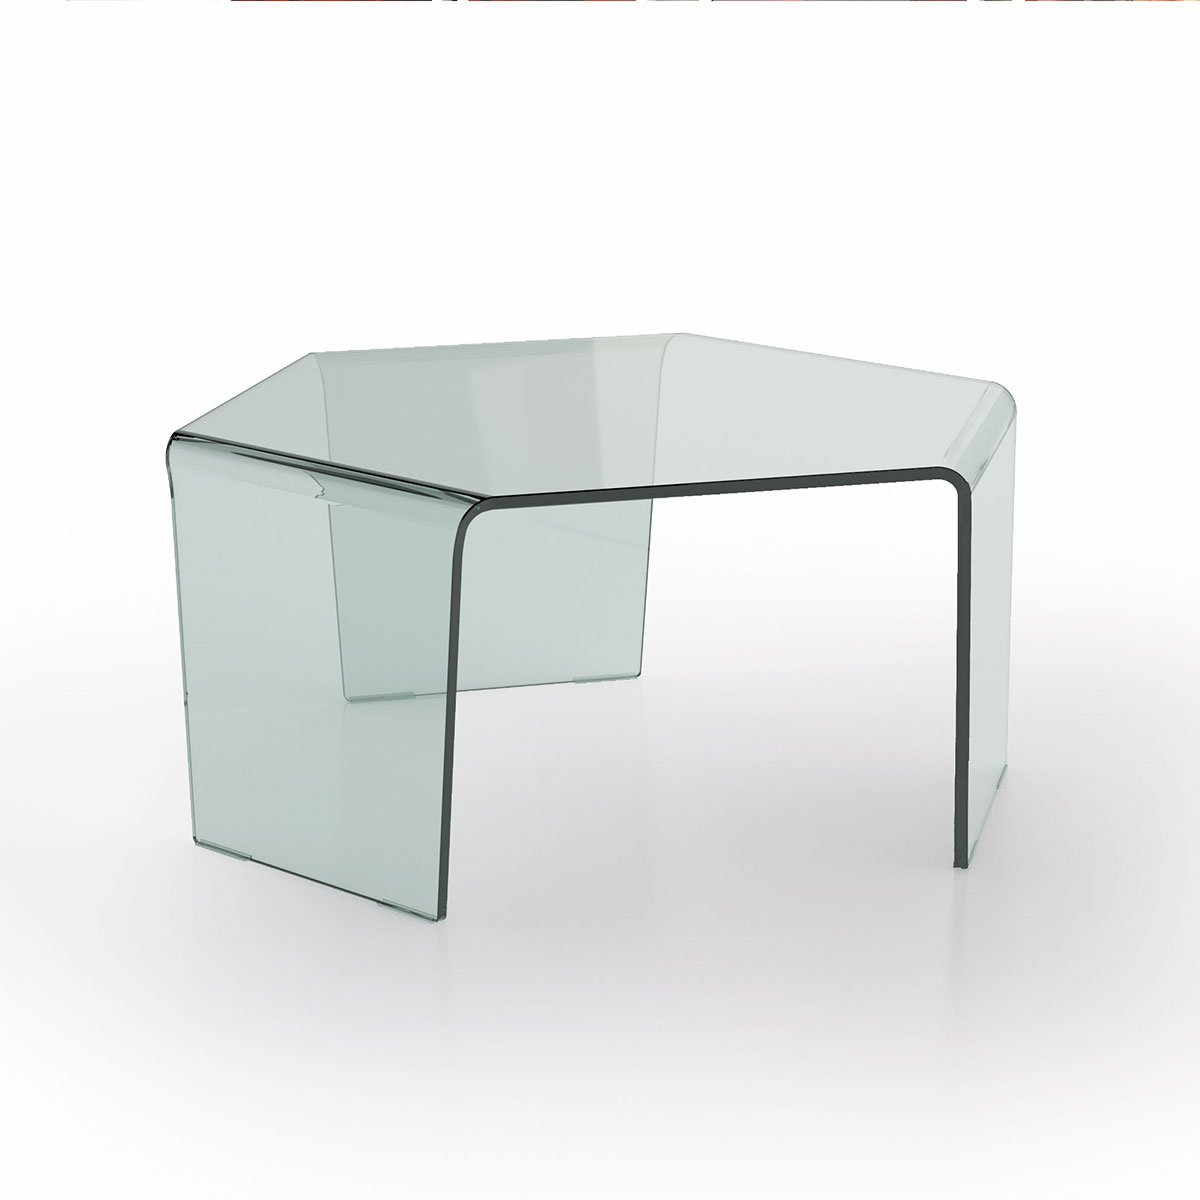 3 feet curved glass coffee table klarity glass furniture for Glass furniture